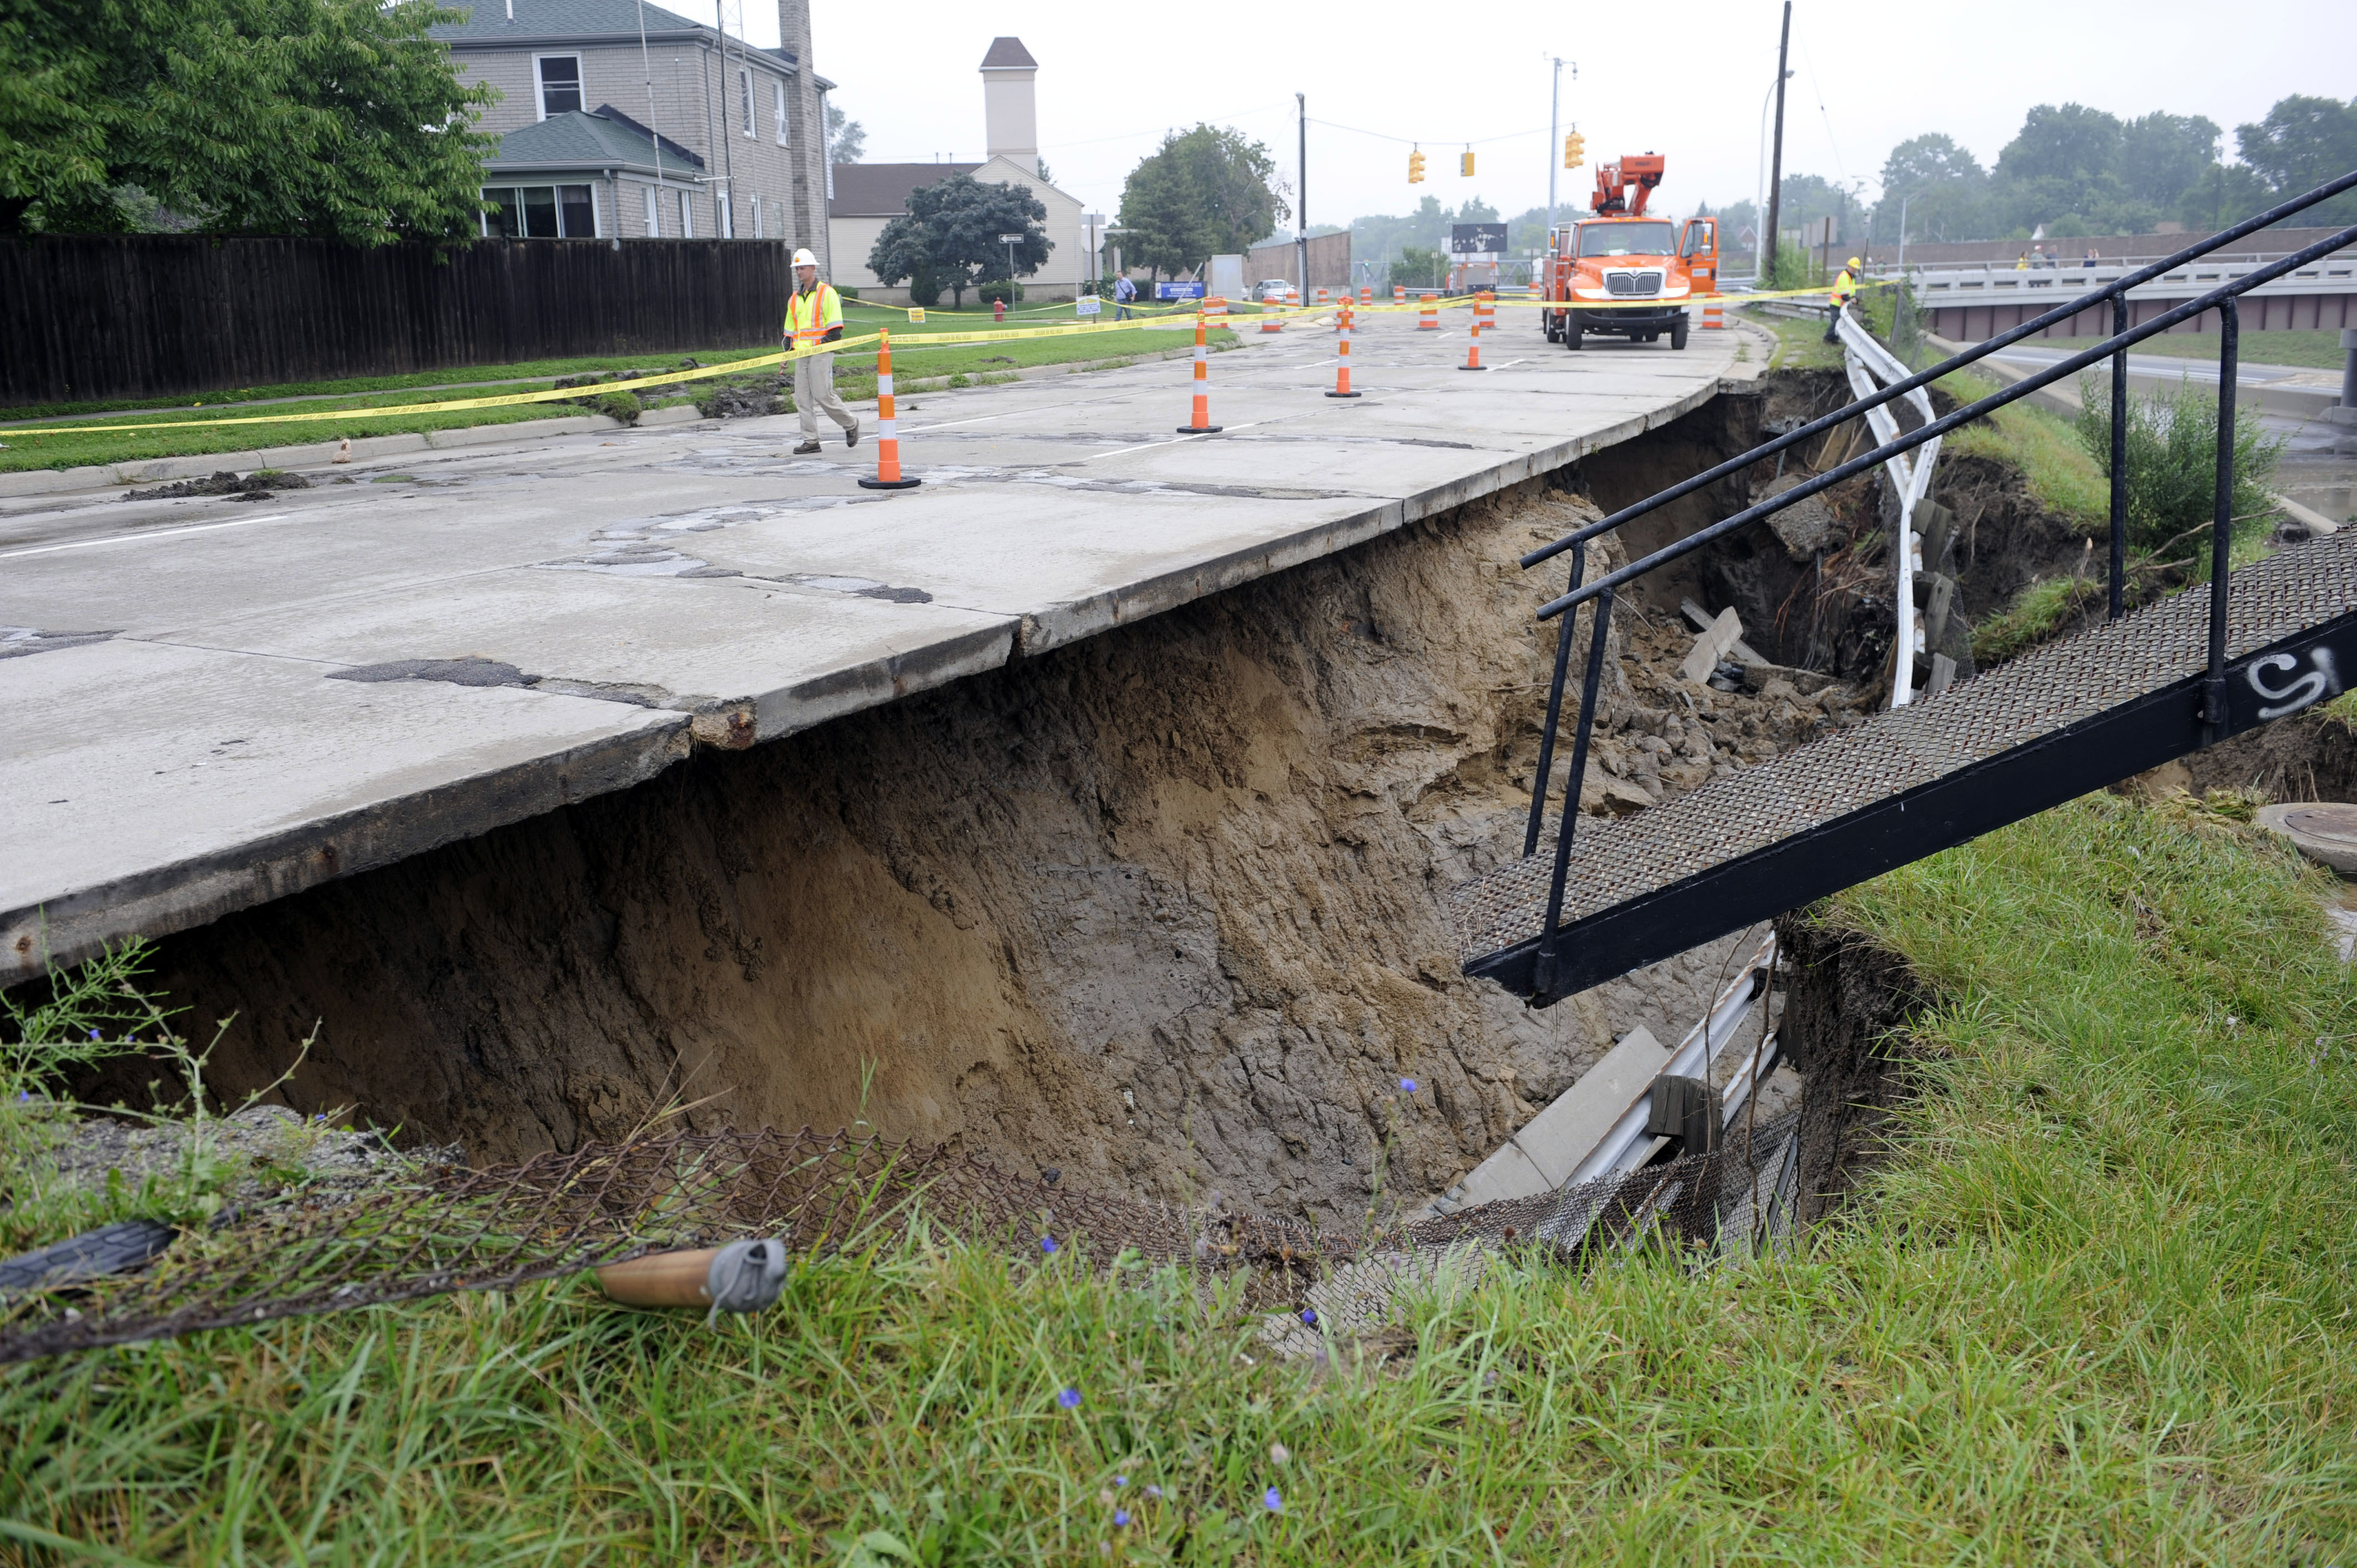 The west service drive of I-75 is washed out under the roadway in Madison Heights, Mich. on Aug. 12, 2014. Fearing more motorists could become stranded a day after a storm dumped more than 6 inches of rain in some places in and around Detroit, the state warned commuters against driving in affected areas Tuesday morning.